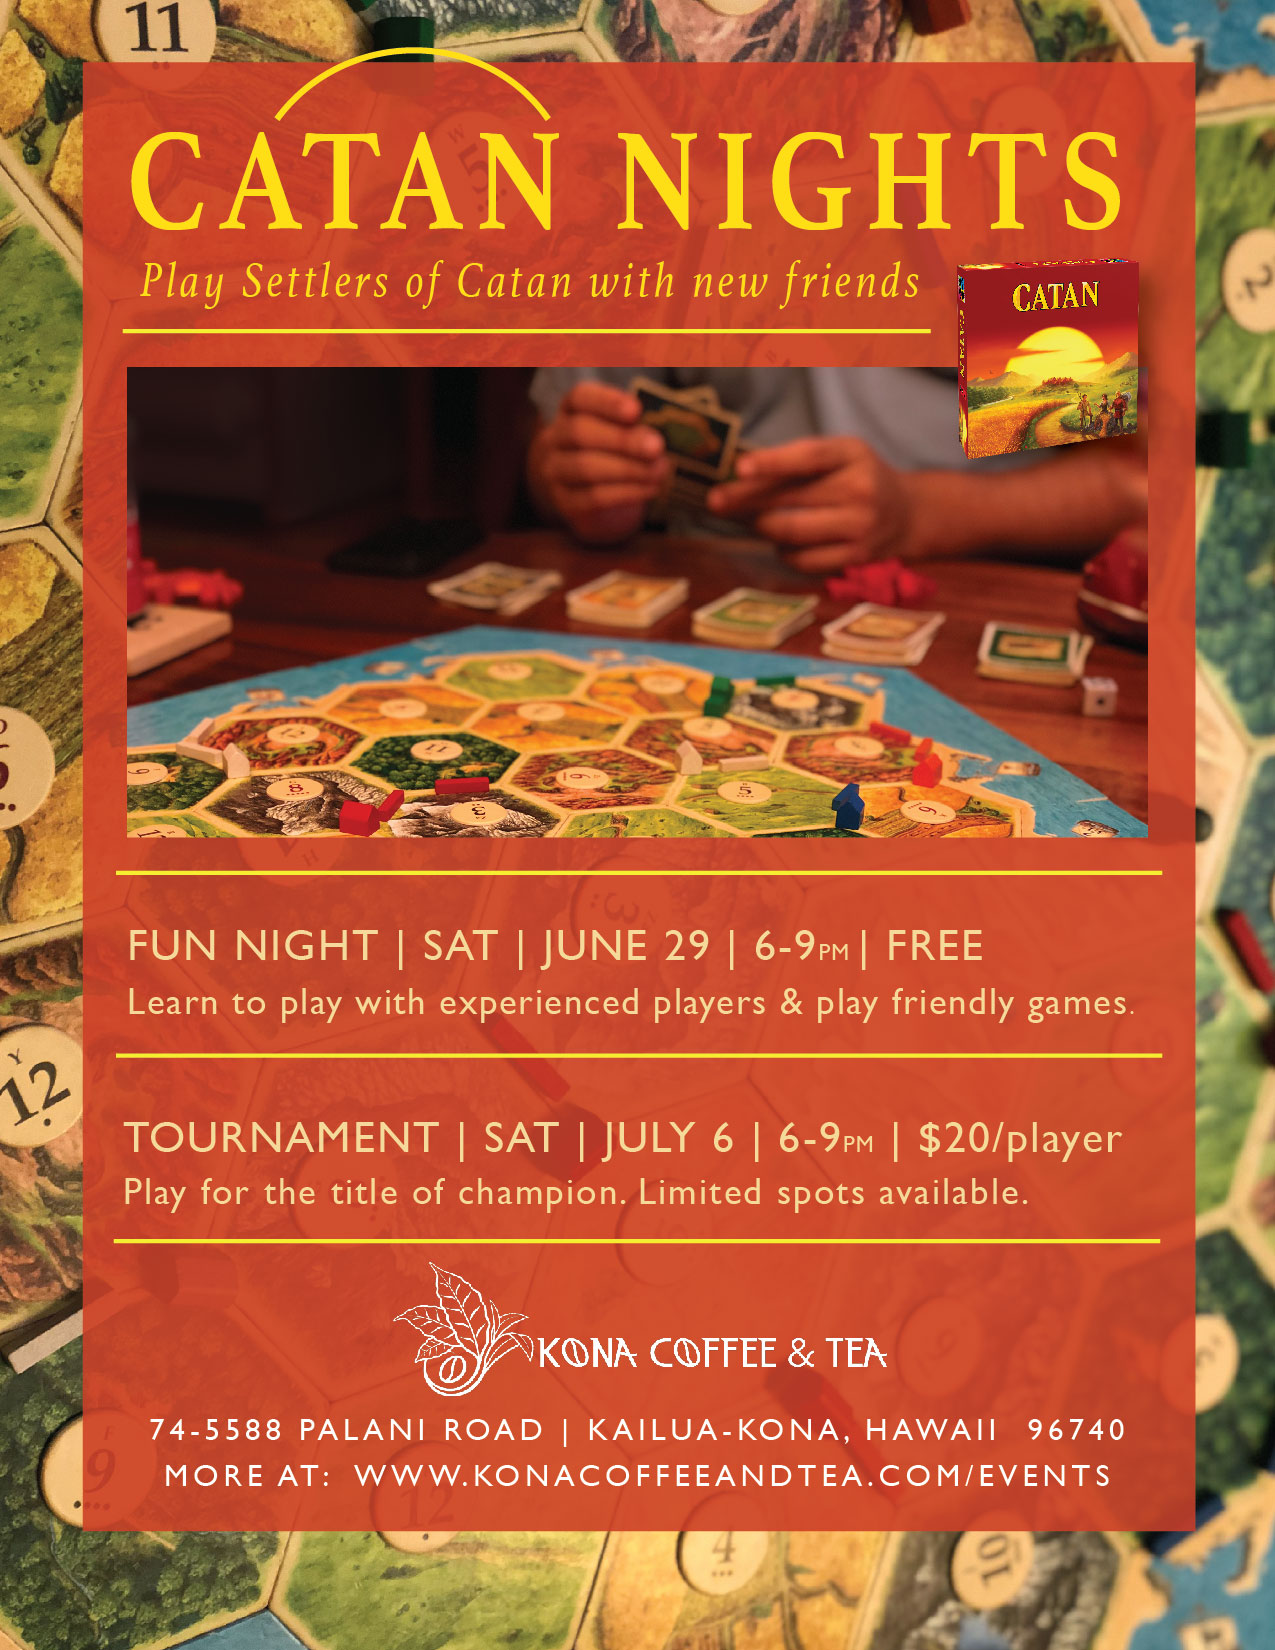 Web flyer_6.29.19 and 7.6.19 Catan Nights-01-01.jpg